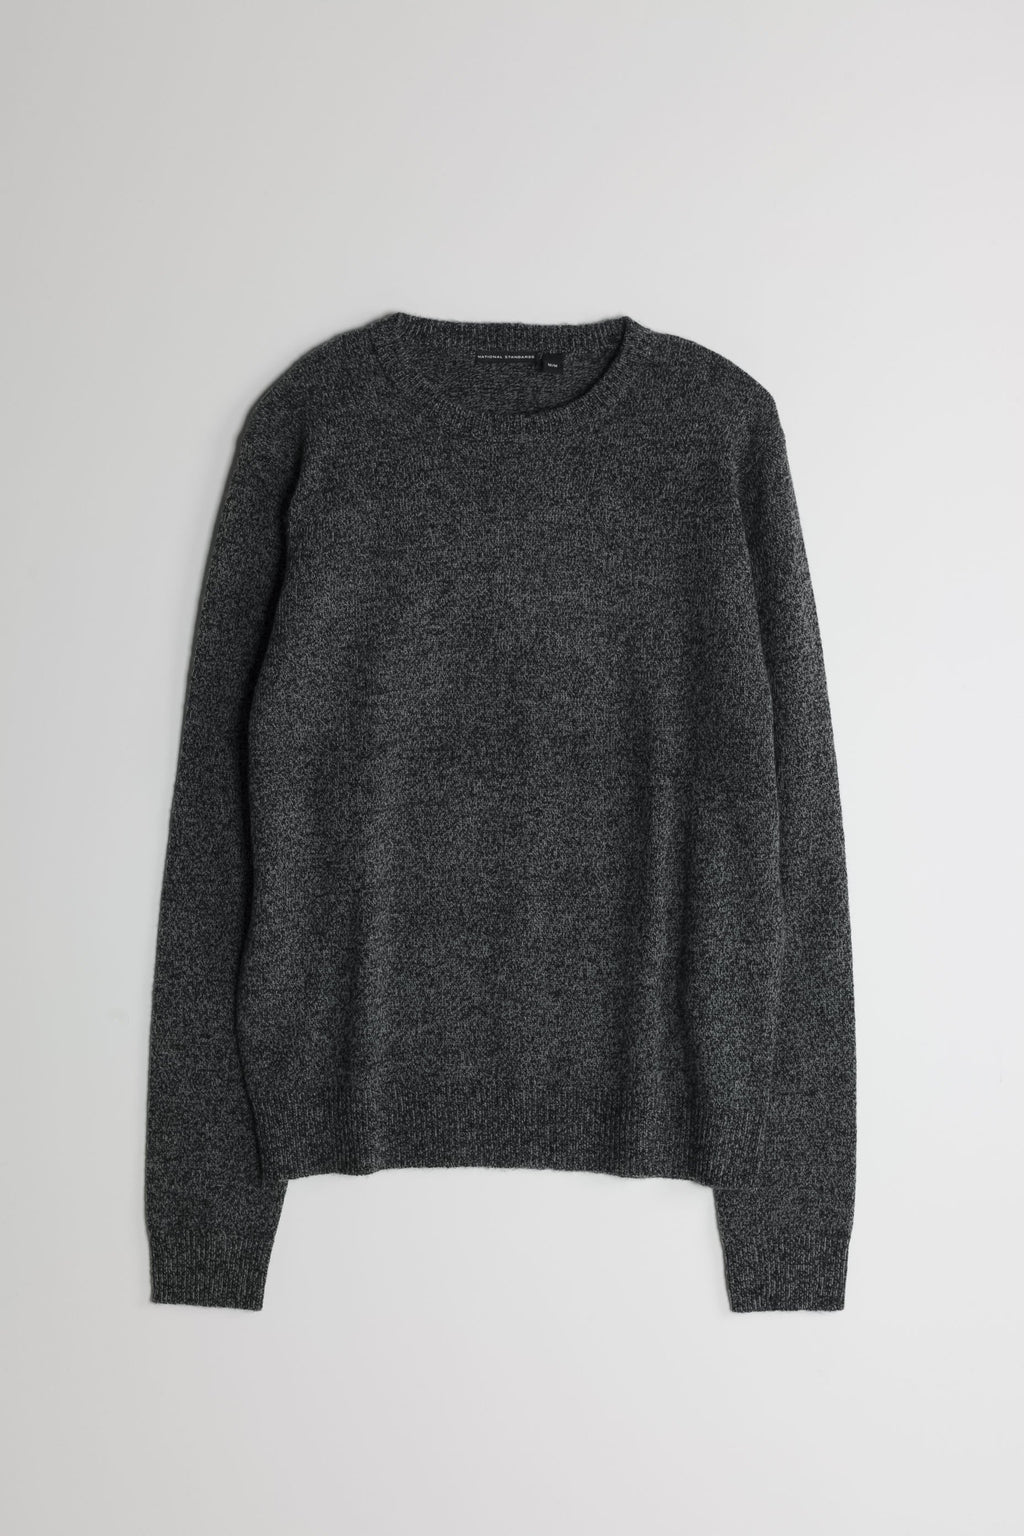 Lambswool Basic Crew in Melange Black 01